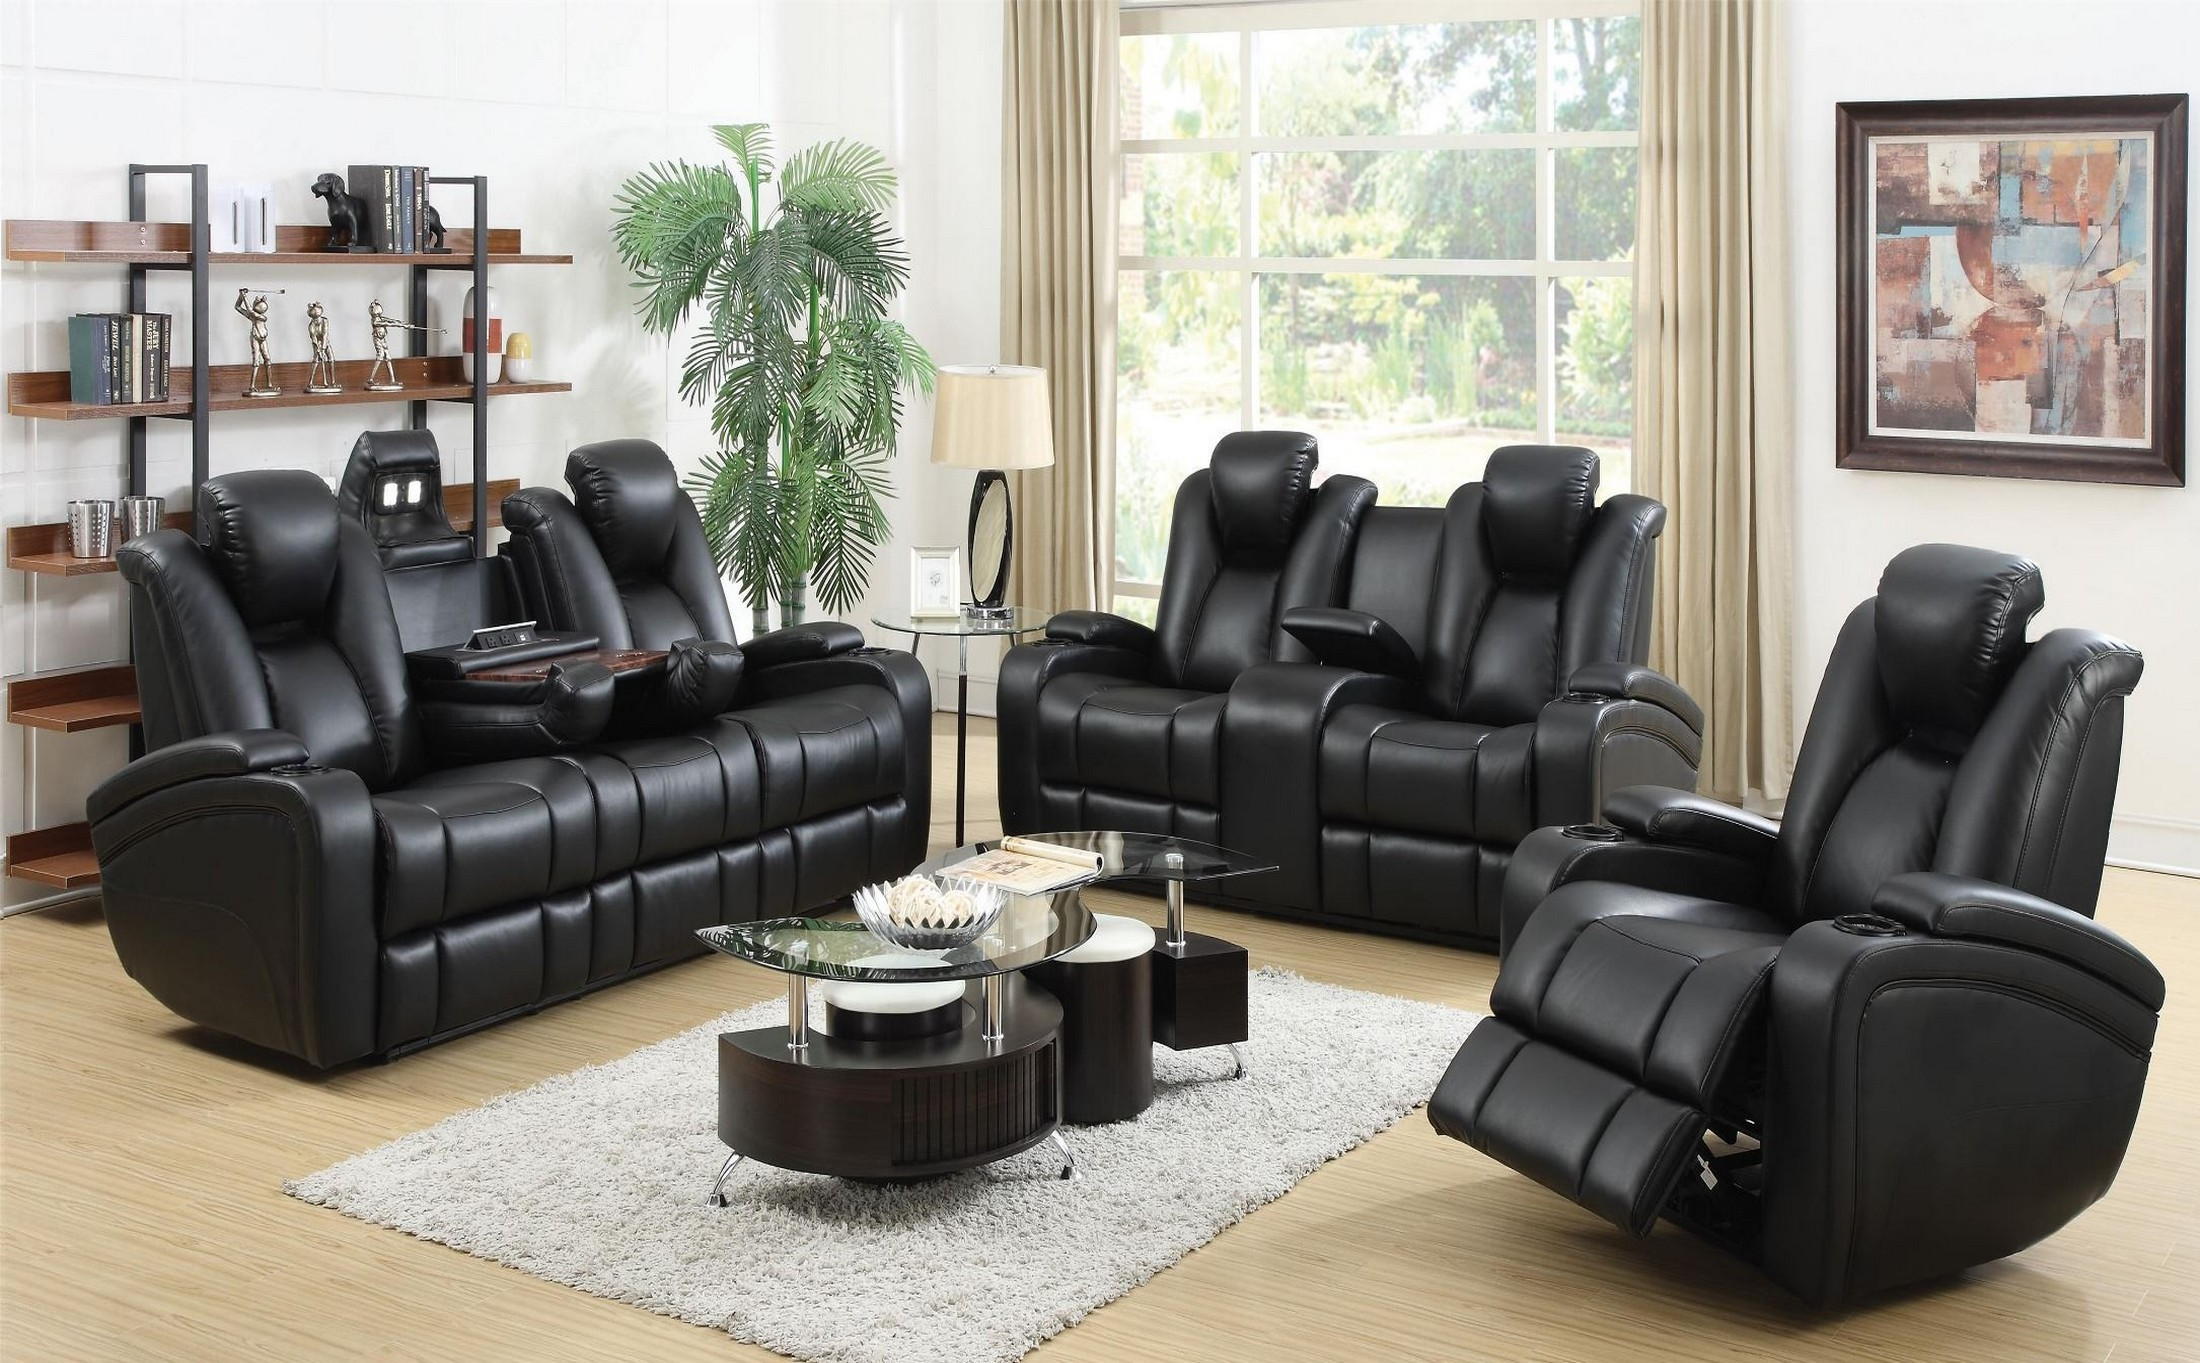 Delange power reclining living room set from coaster 601741p coleman furniture for Living room with two recliners